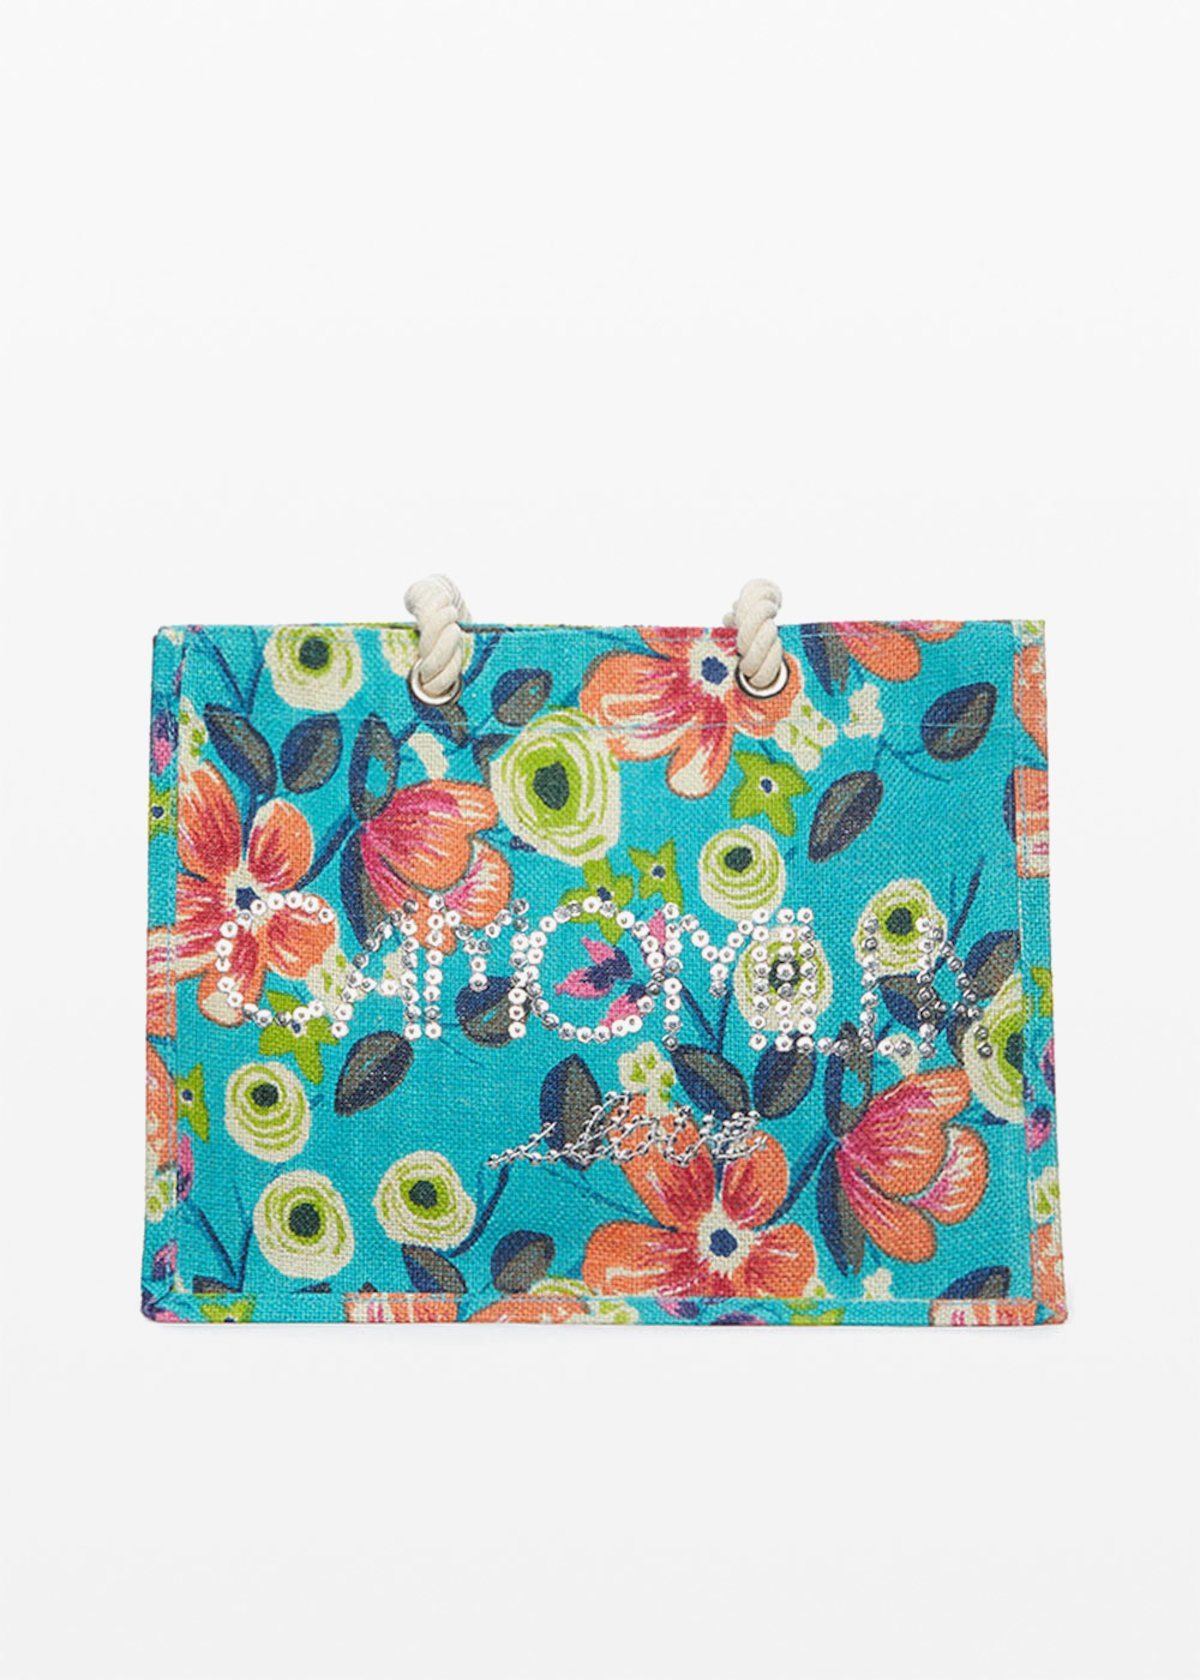 Biky flowers print jute bag with Camomilla ilove logo on the front - Sky / Avocado  Fantasia - Woman